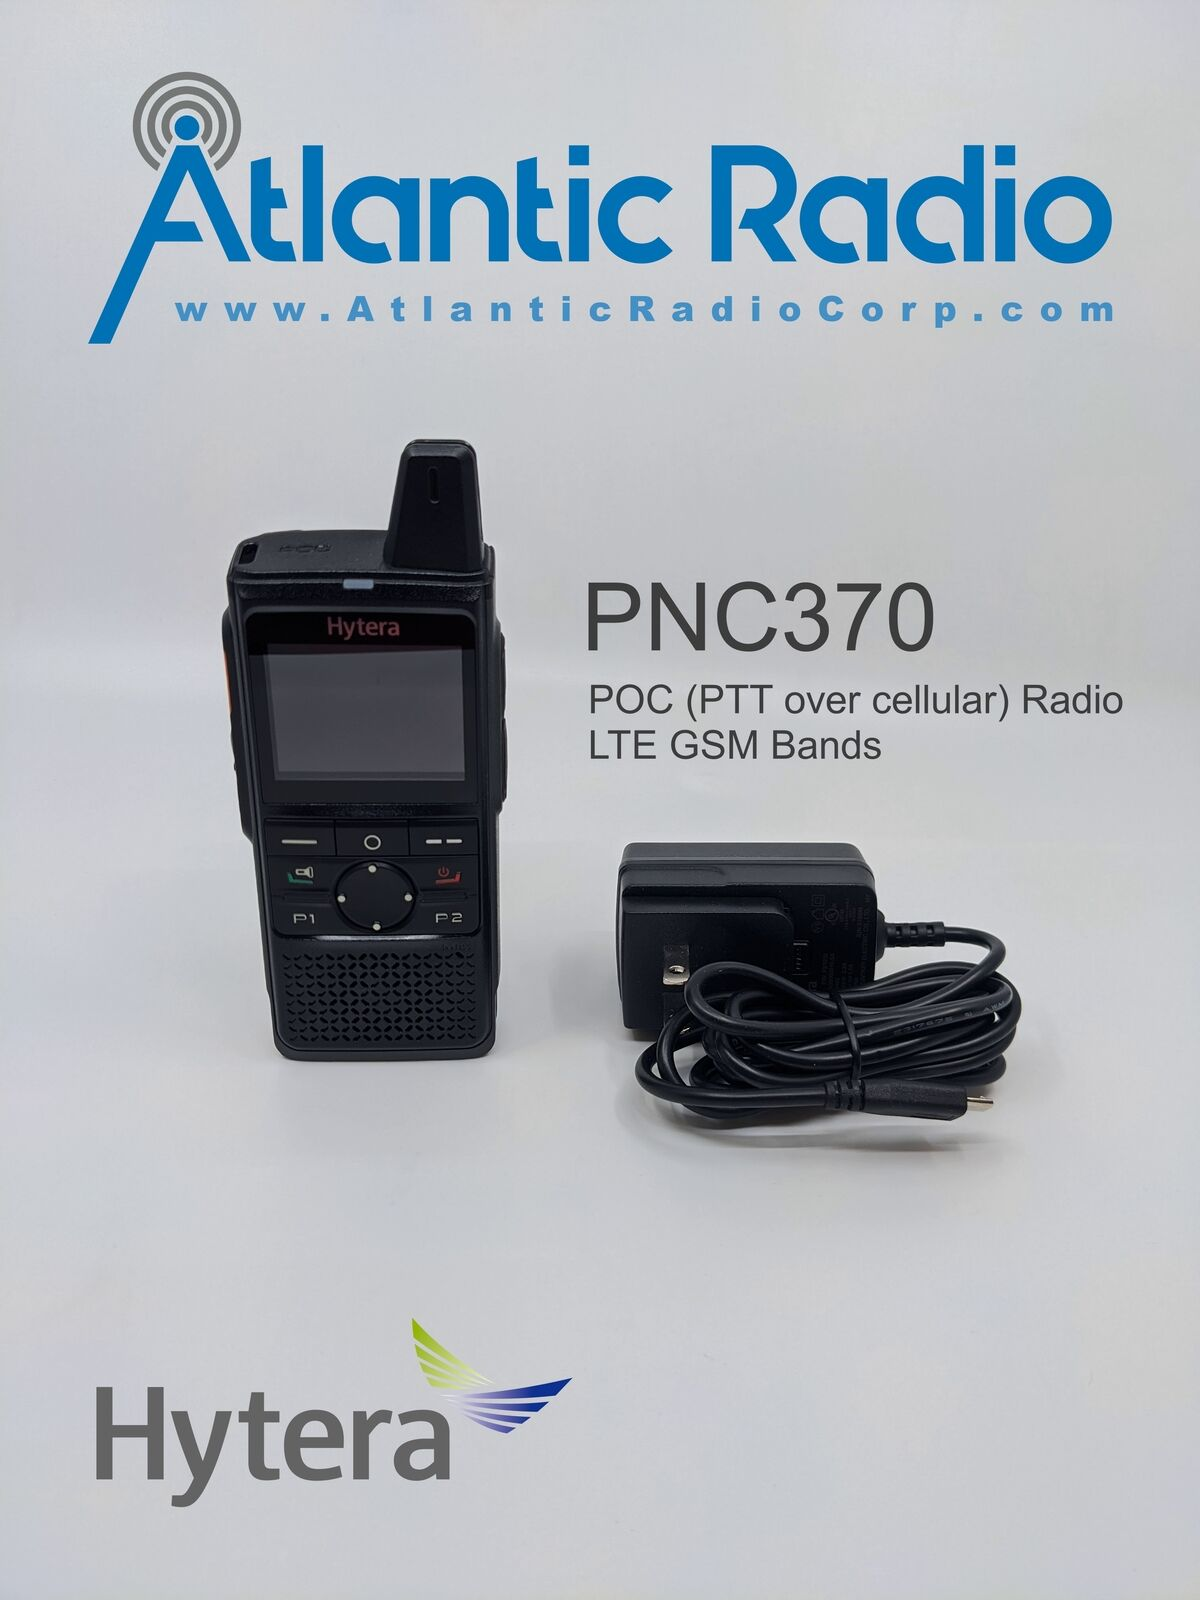 Hytera PNC370 POC PTT over cellular radio uses GSM LTE Bands Android. Available Now for 199.99